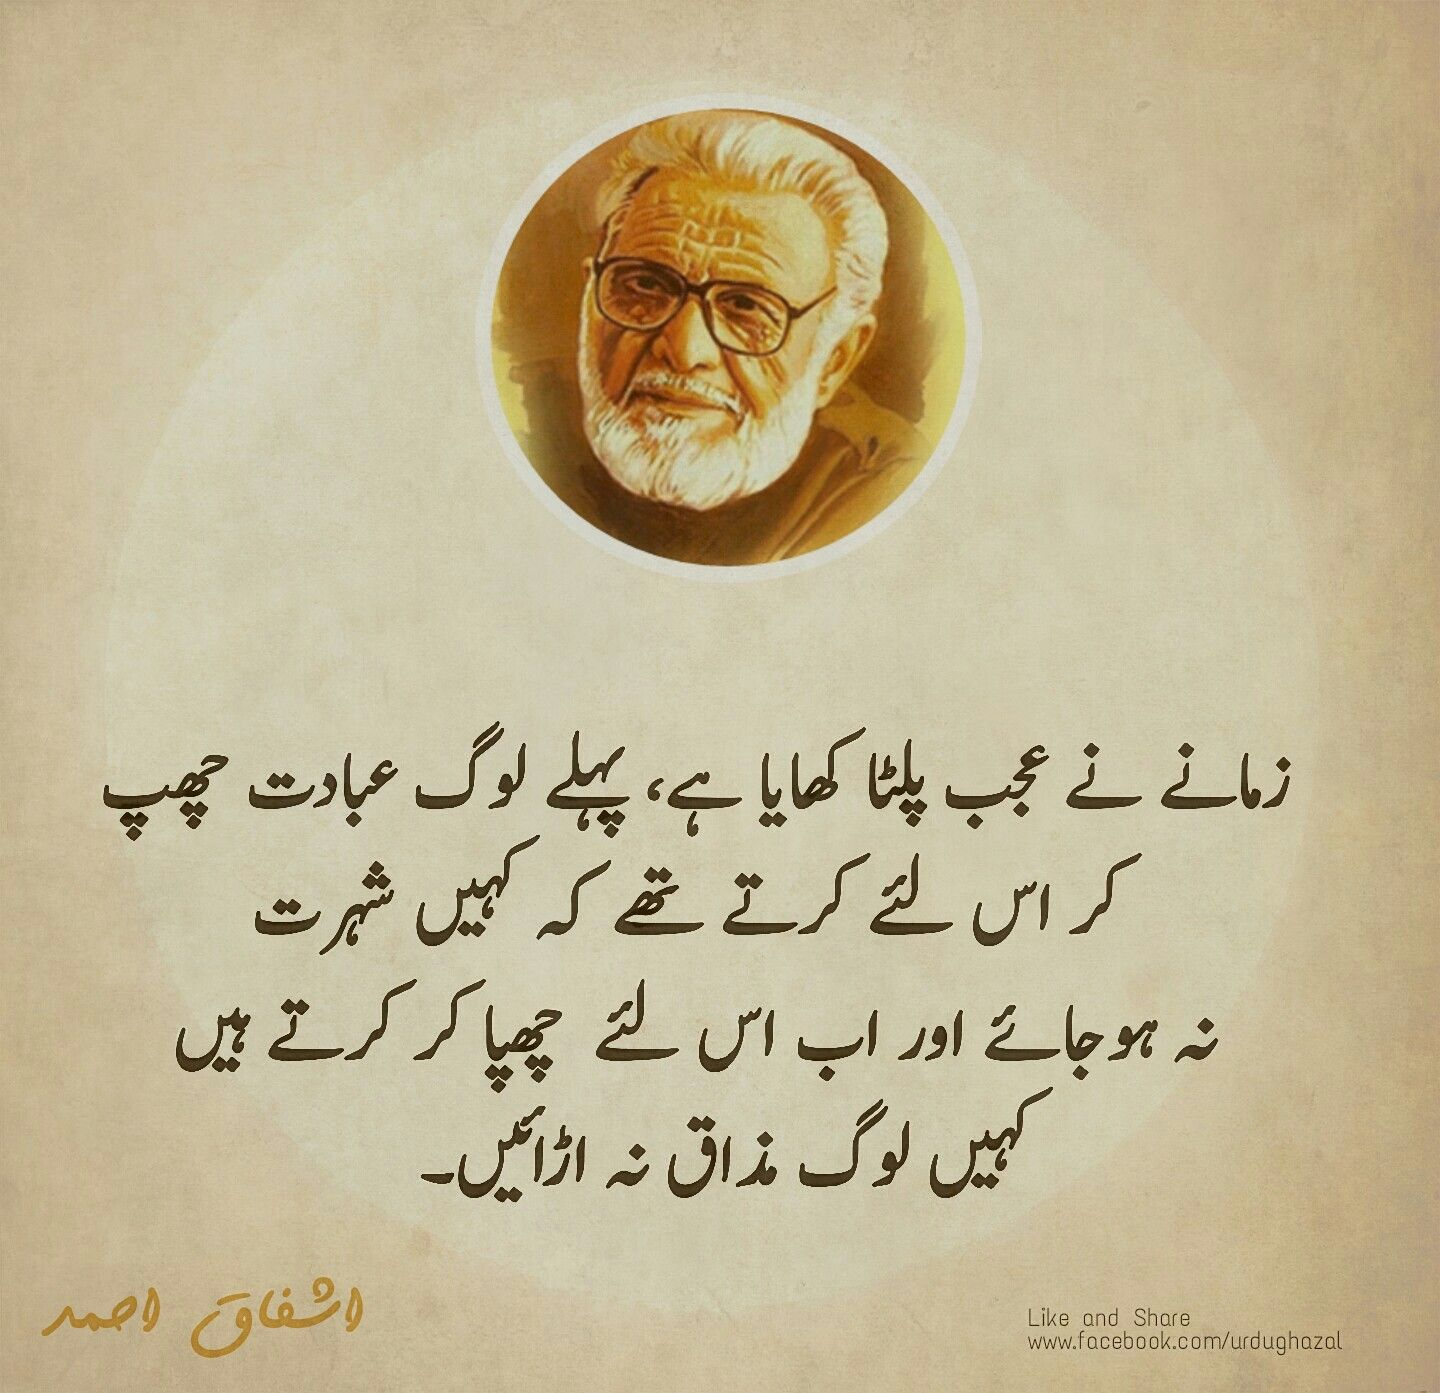 Pin by urdu ghazal on ashfaq ahmed pinterest for Bano qudsia poetry